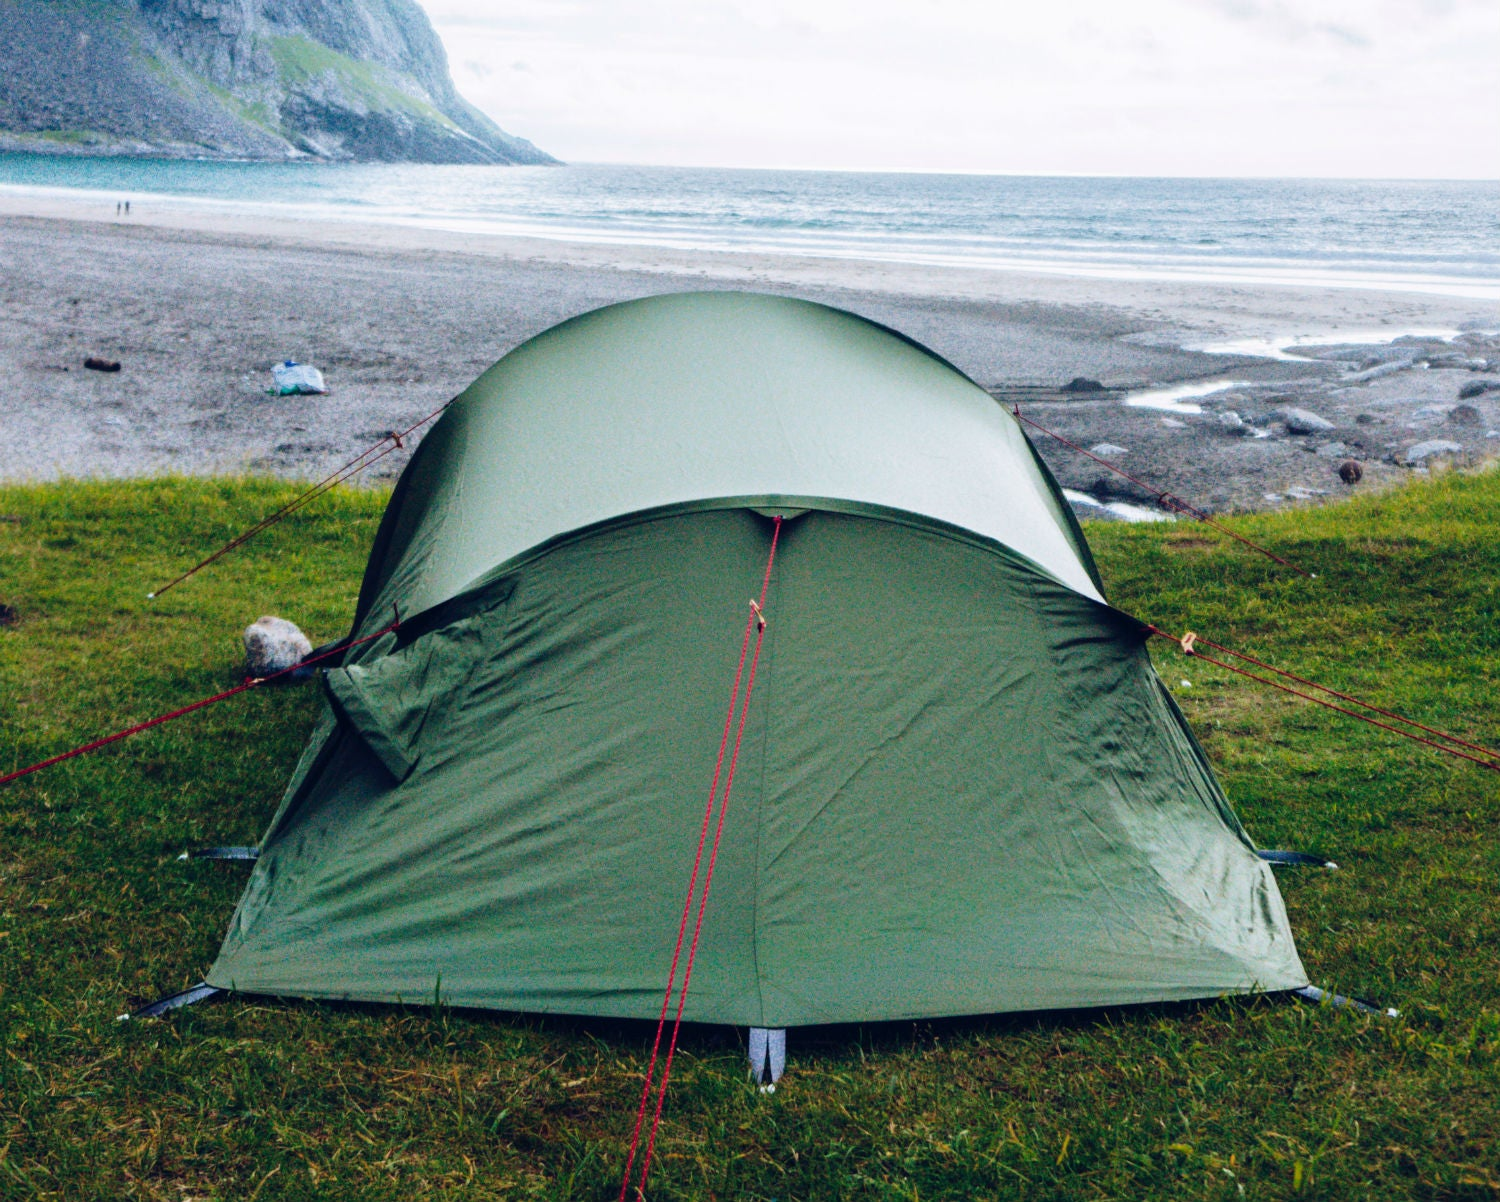 75b8a25bd3 Footprint (tent)   ˈfʊtˌprɪnt  The amount of ground your tent takes up. Can  also refer to the liner specifically made to go under a tent to help  mitigate ...